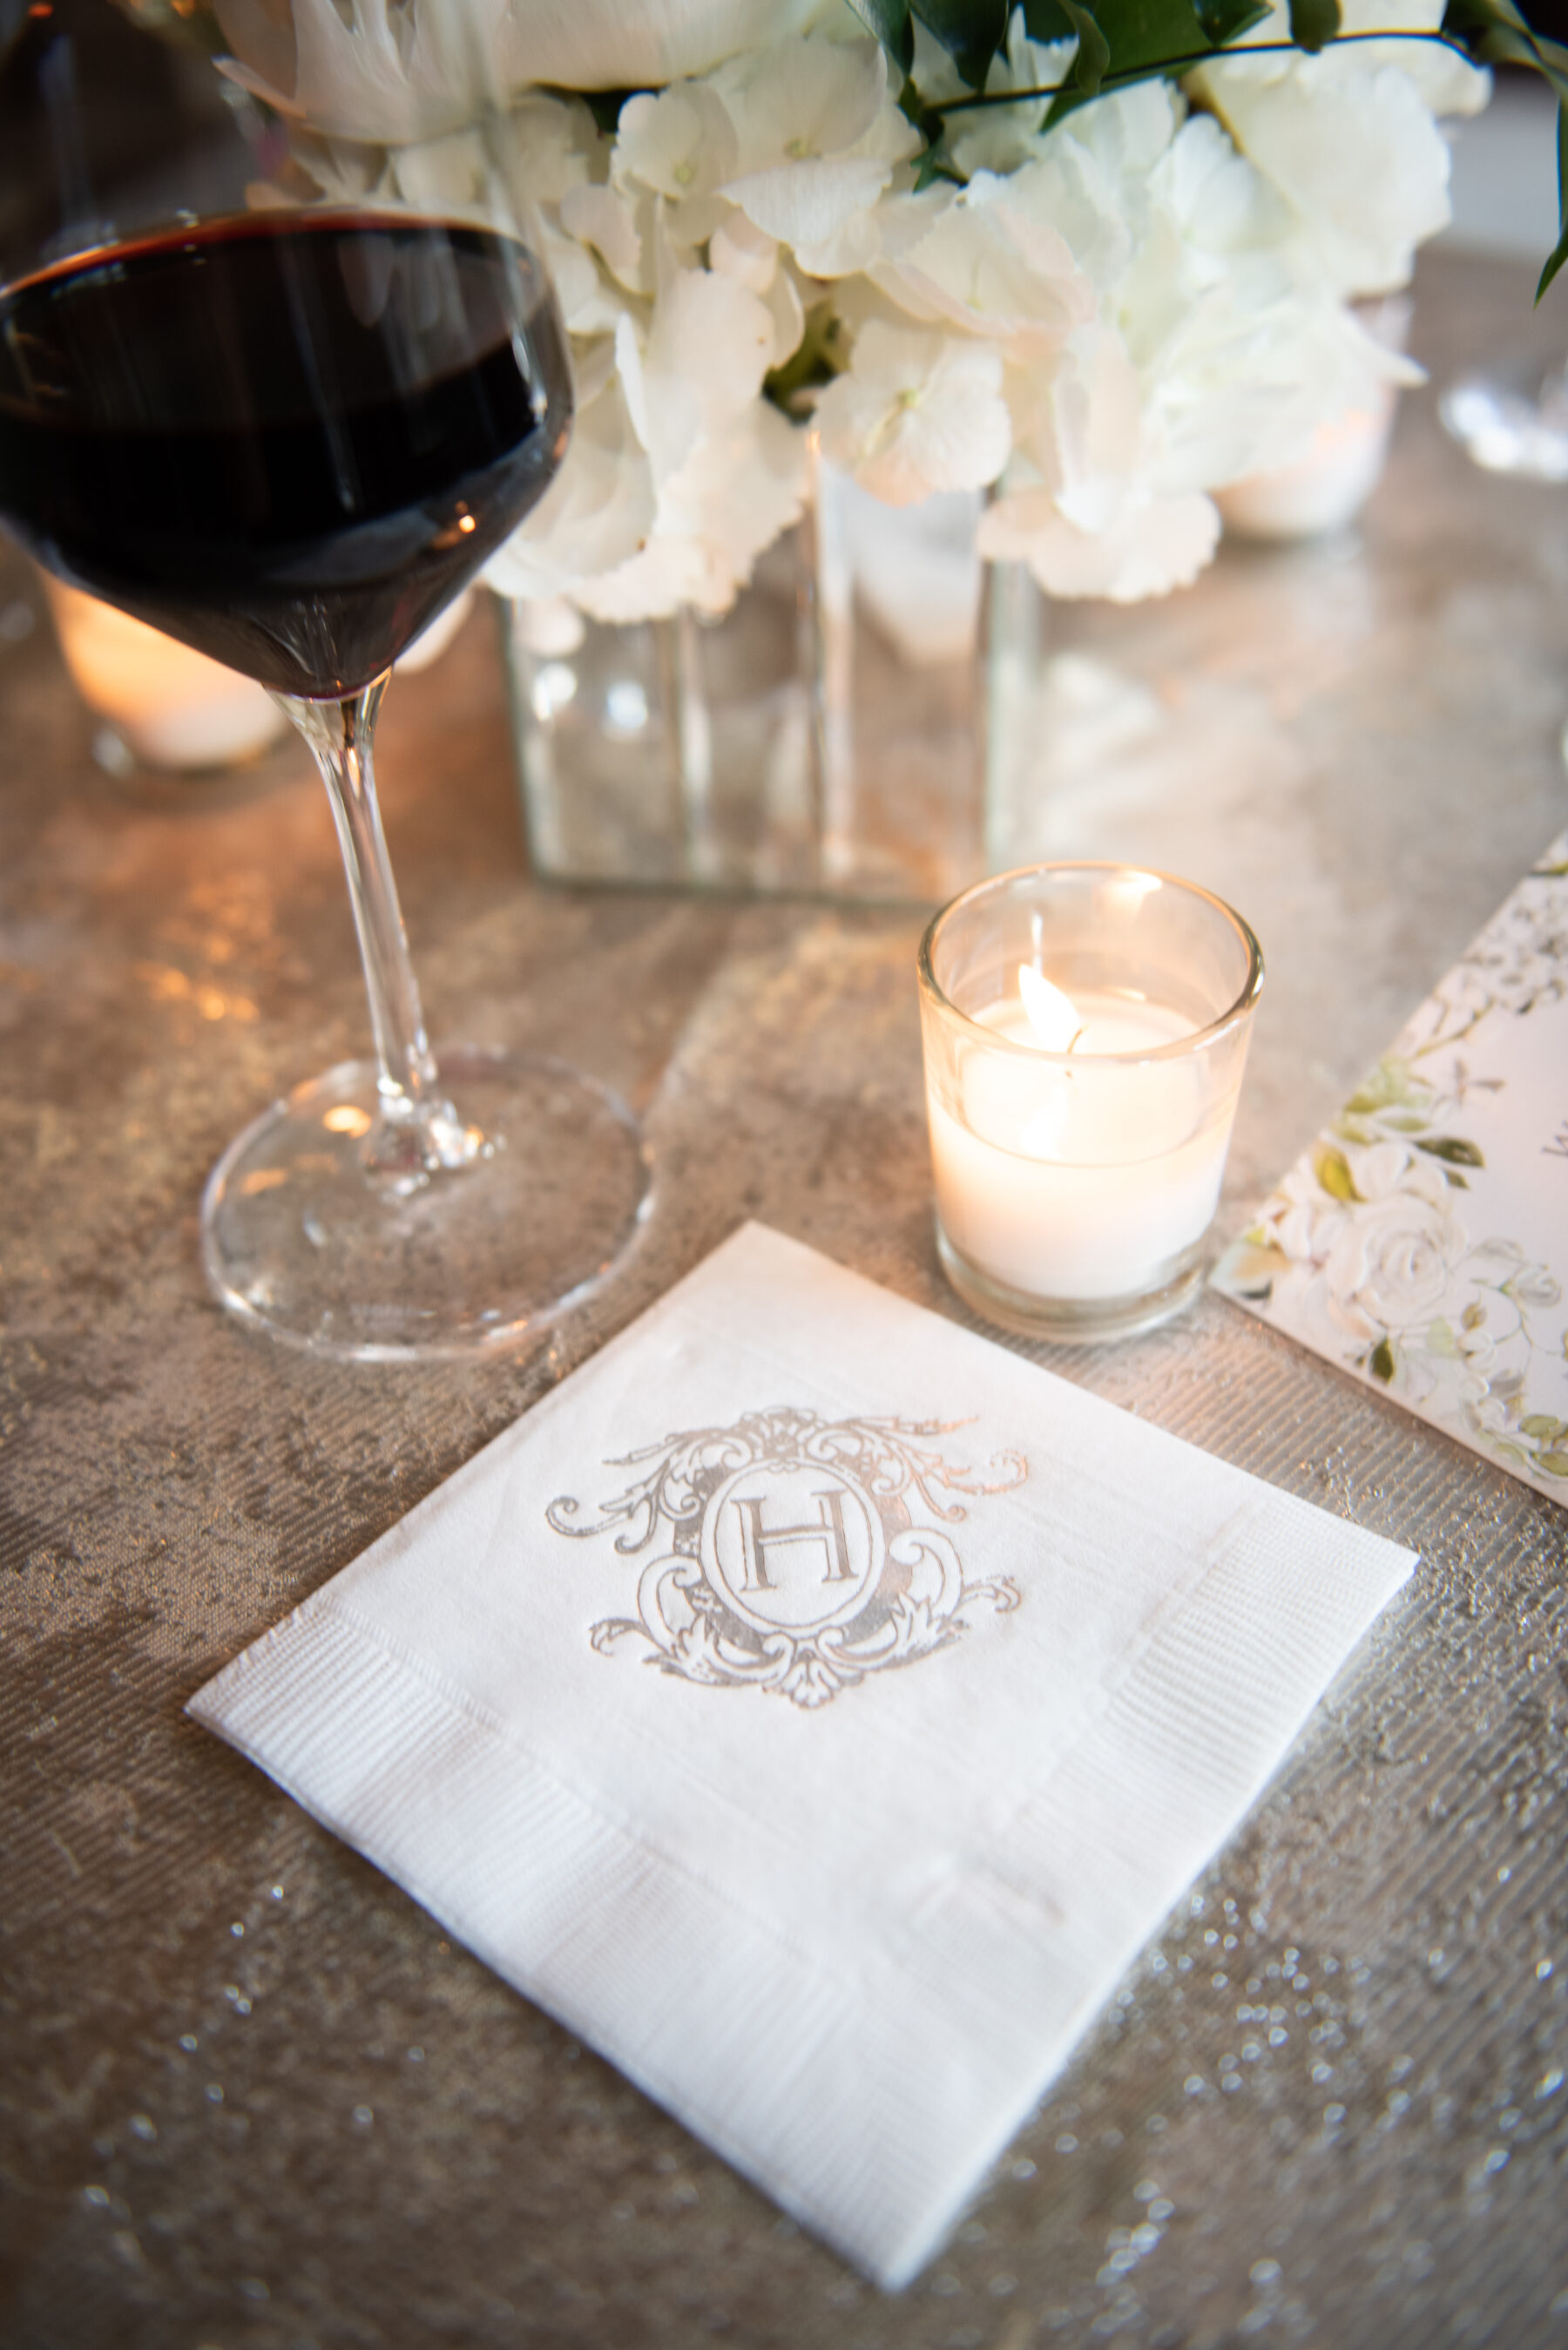 Custom cocktail hour napkins: Floral Filled Luxurious Wedding by LMA Designs featured on Nashville Bride Guide